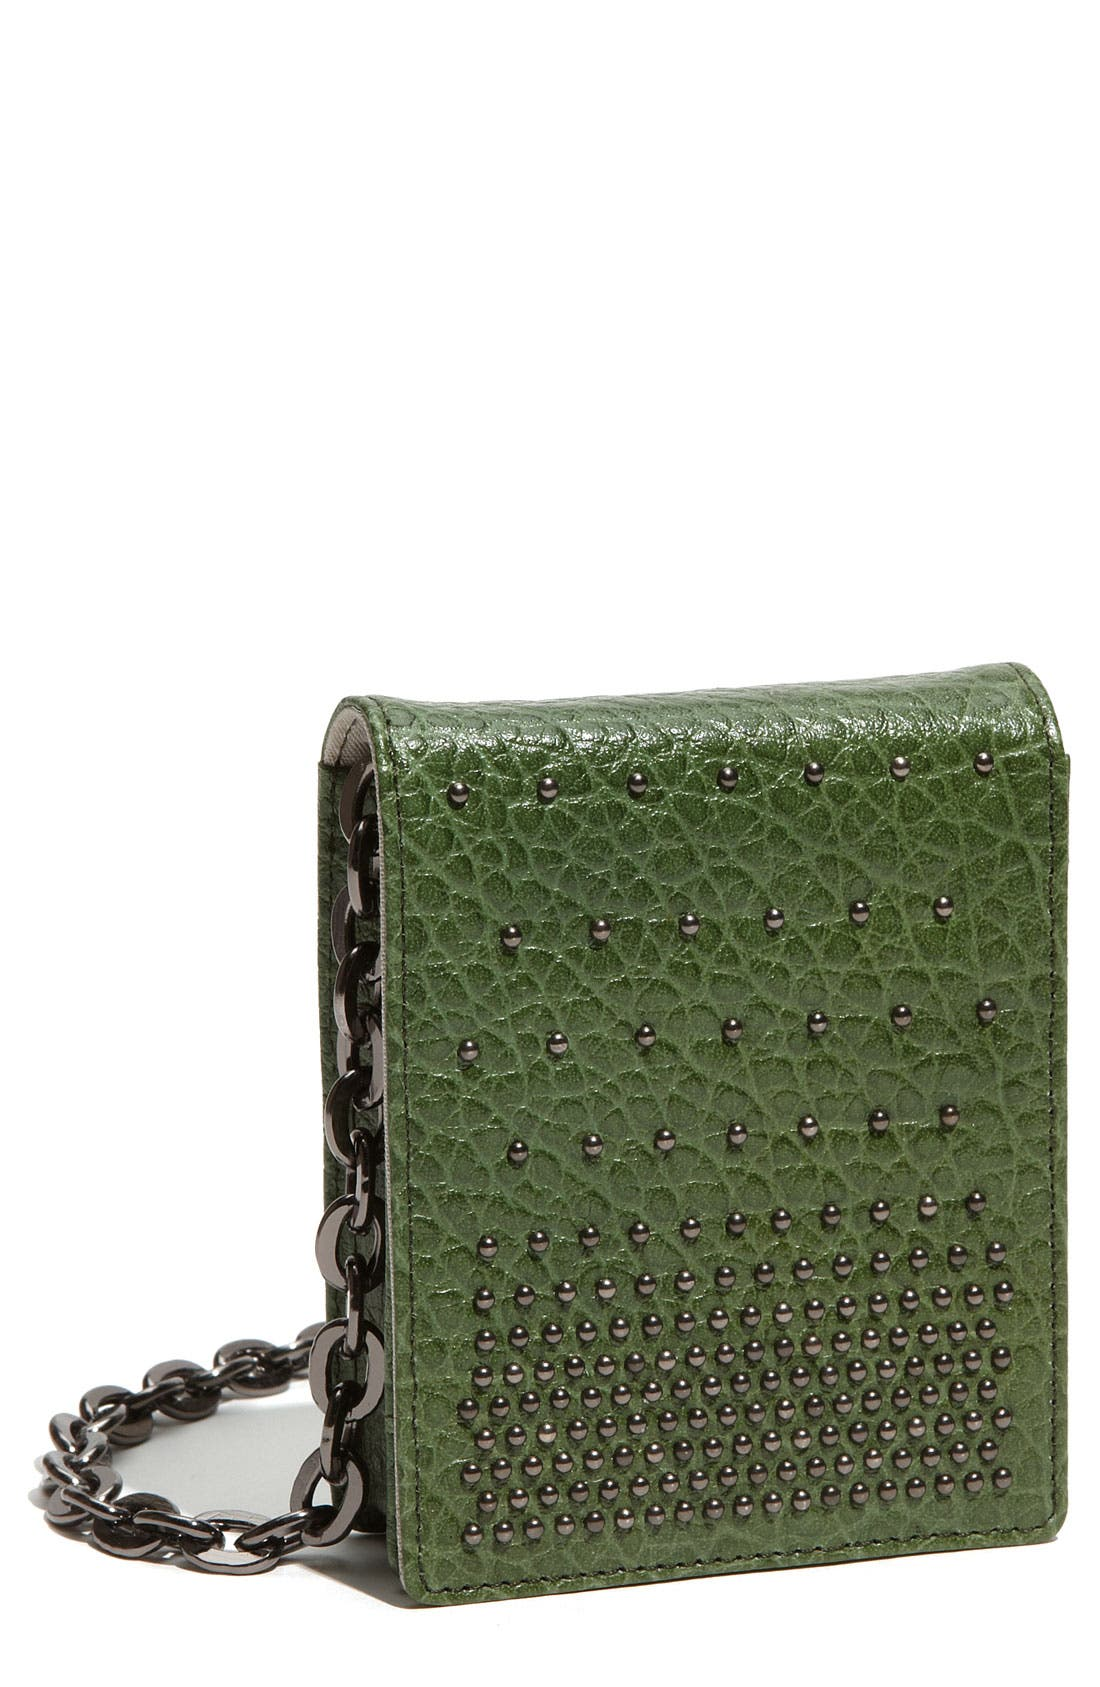 Alternate Image 1 Selected - Nordstrom Studded Mini Leather Crossbody Bag